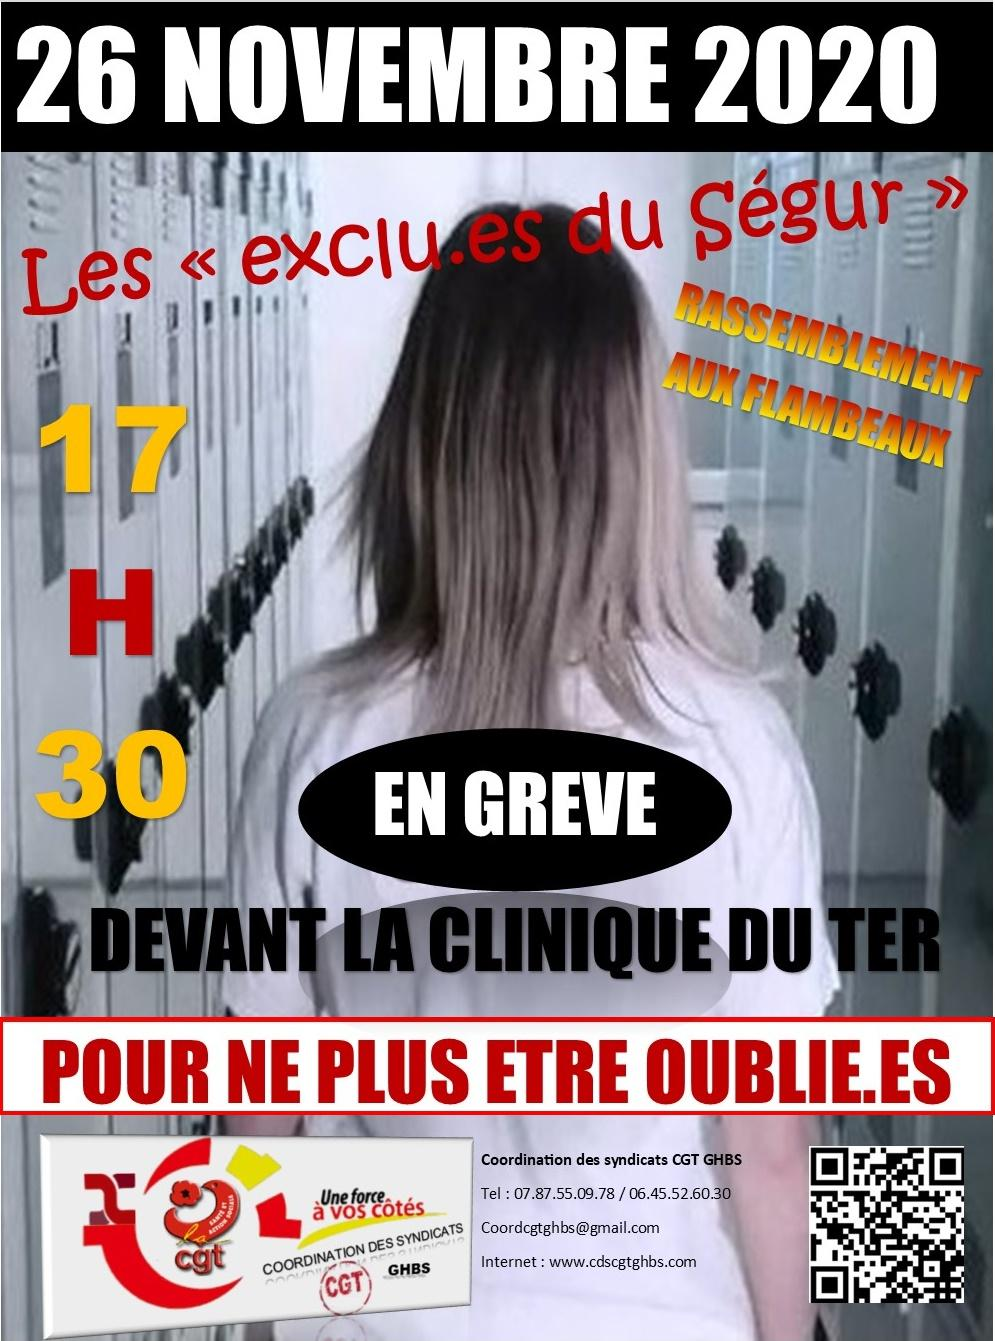 17112020 tract sp gcs le ter 26 11 2020 vers cds cgt ghbs 1